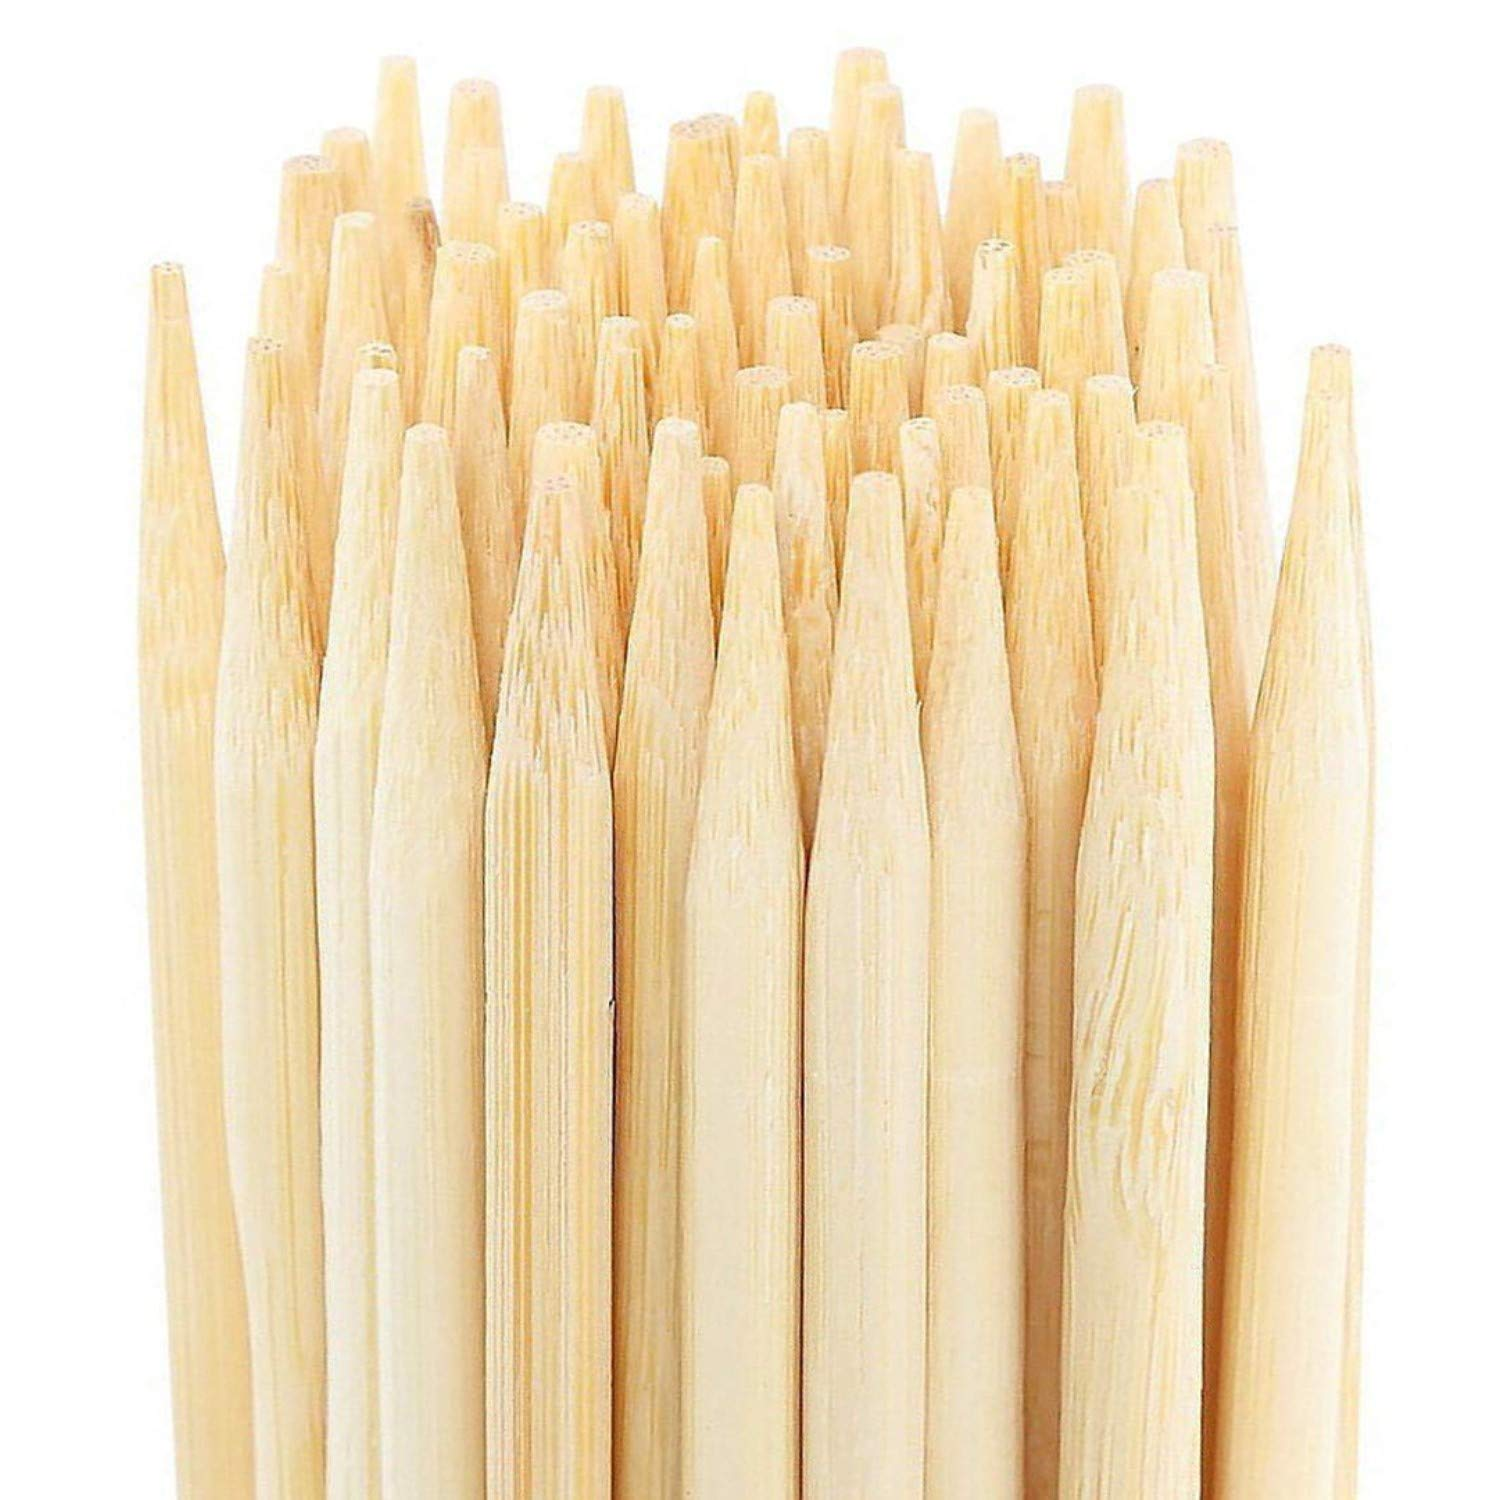 Bamboo Marshmallow Roasting Sticks 36 Inch 6mm Extra Thick Extra Long Heavy Duty Wooden Skewers, 110 Pieces. Great for S'mores Hot Dog Kebab Sausage, Environmentally Safe 100% Biodegradable